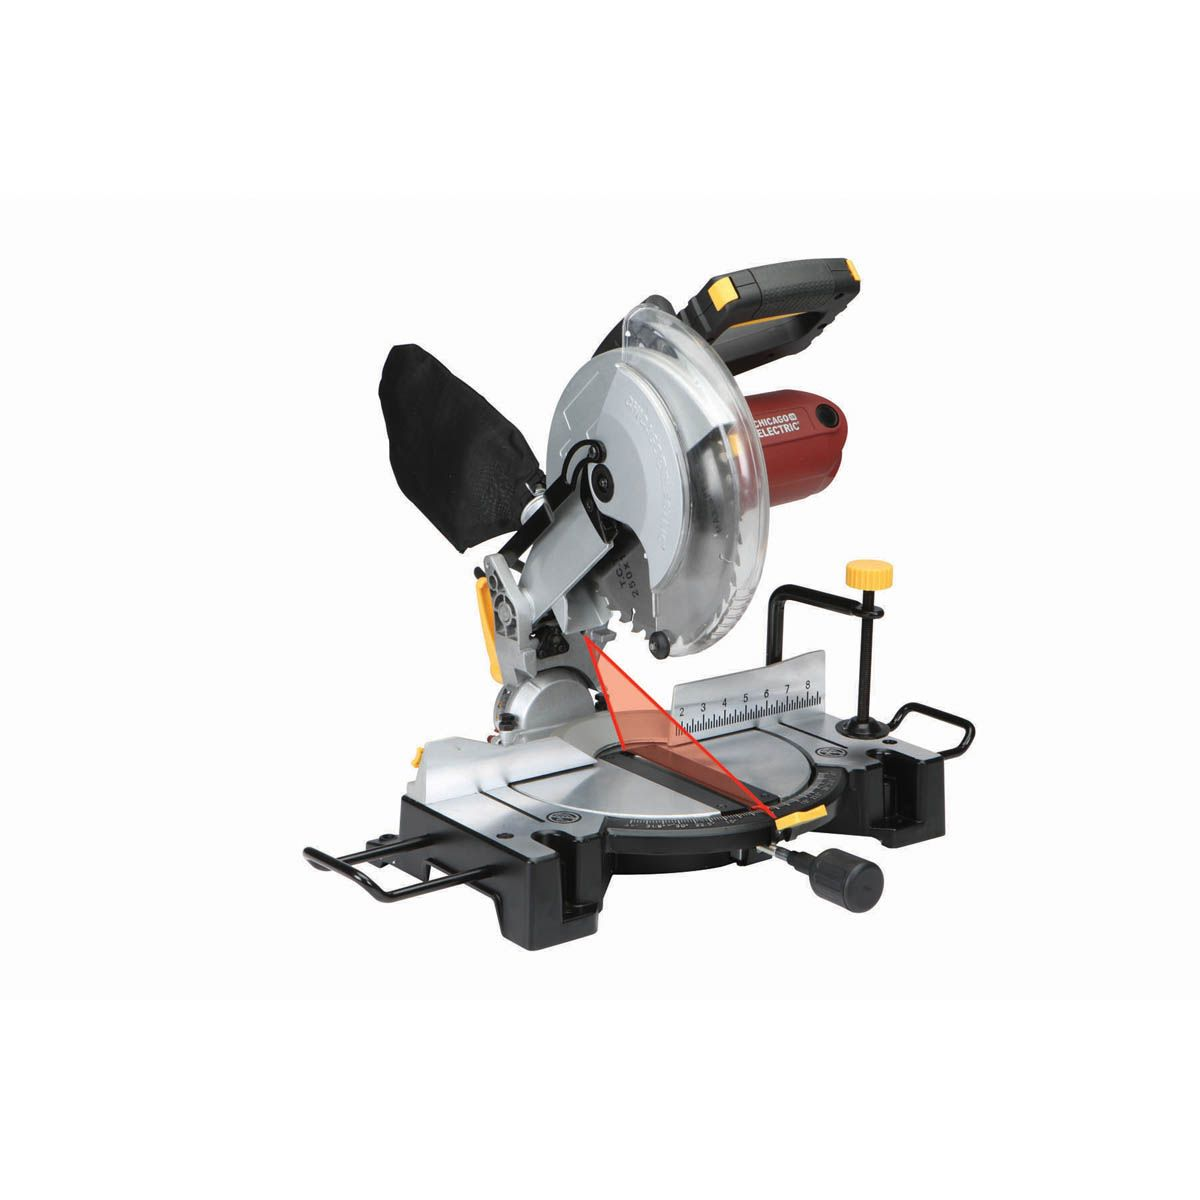 10 In Compound Miter Saw With Laser Guide System Compound Mitre Saw Sliding Compound Miter Saw Guide System